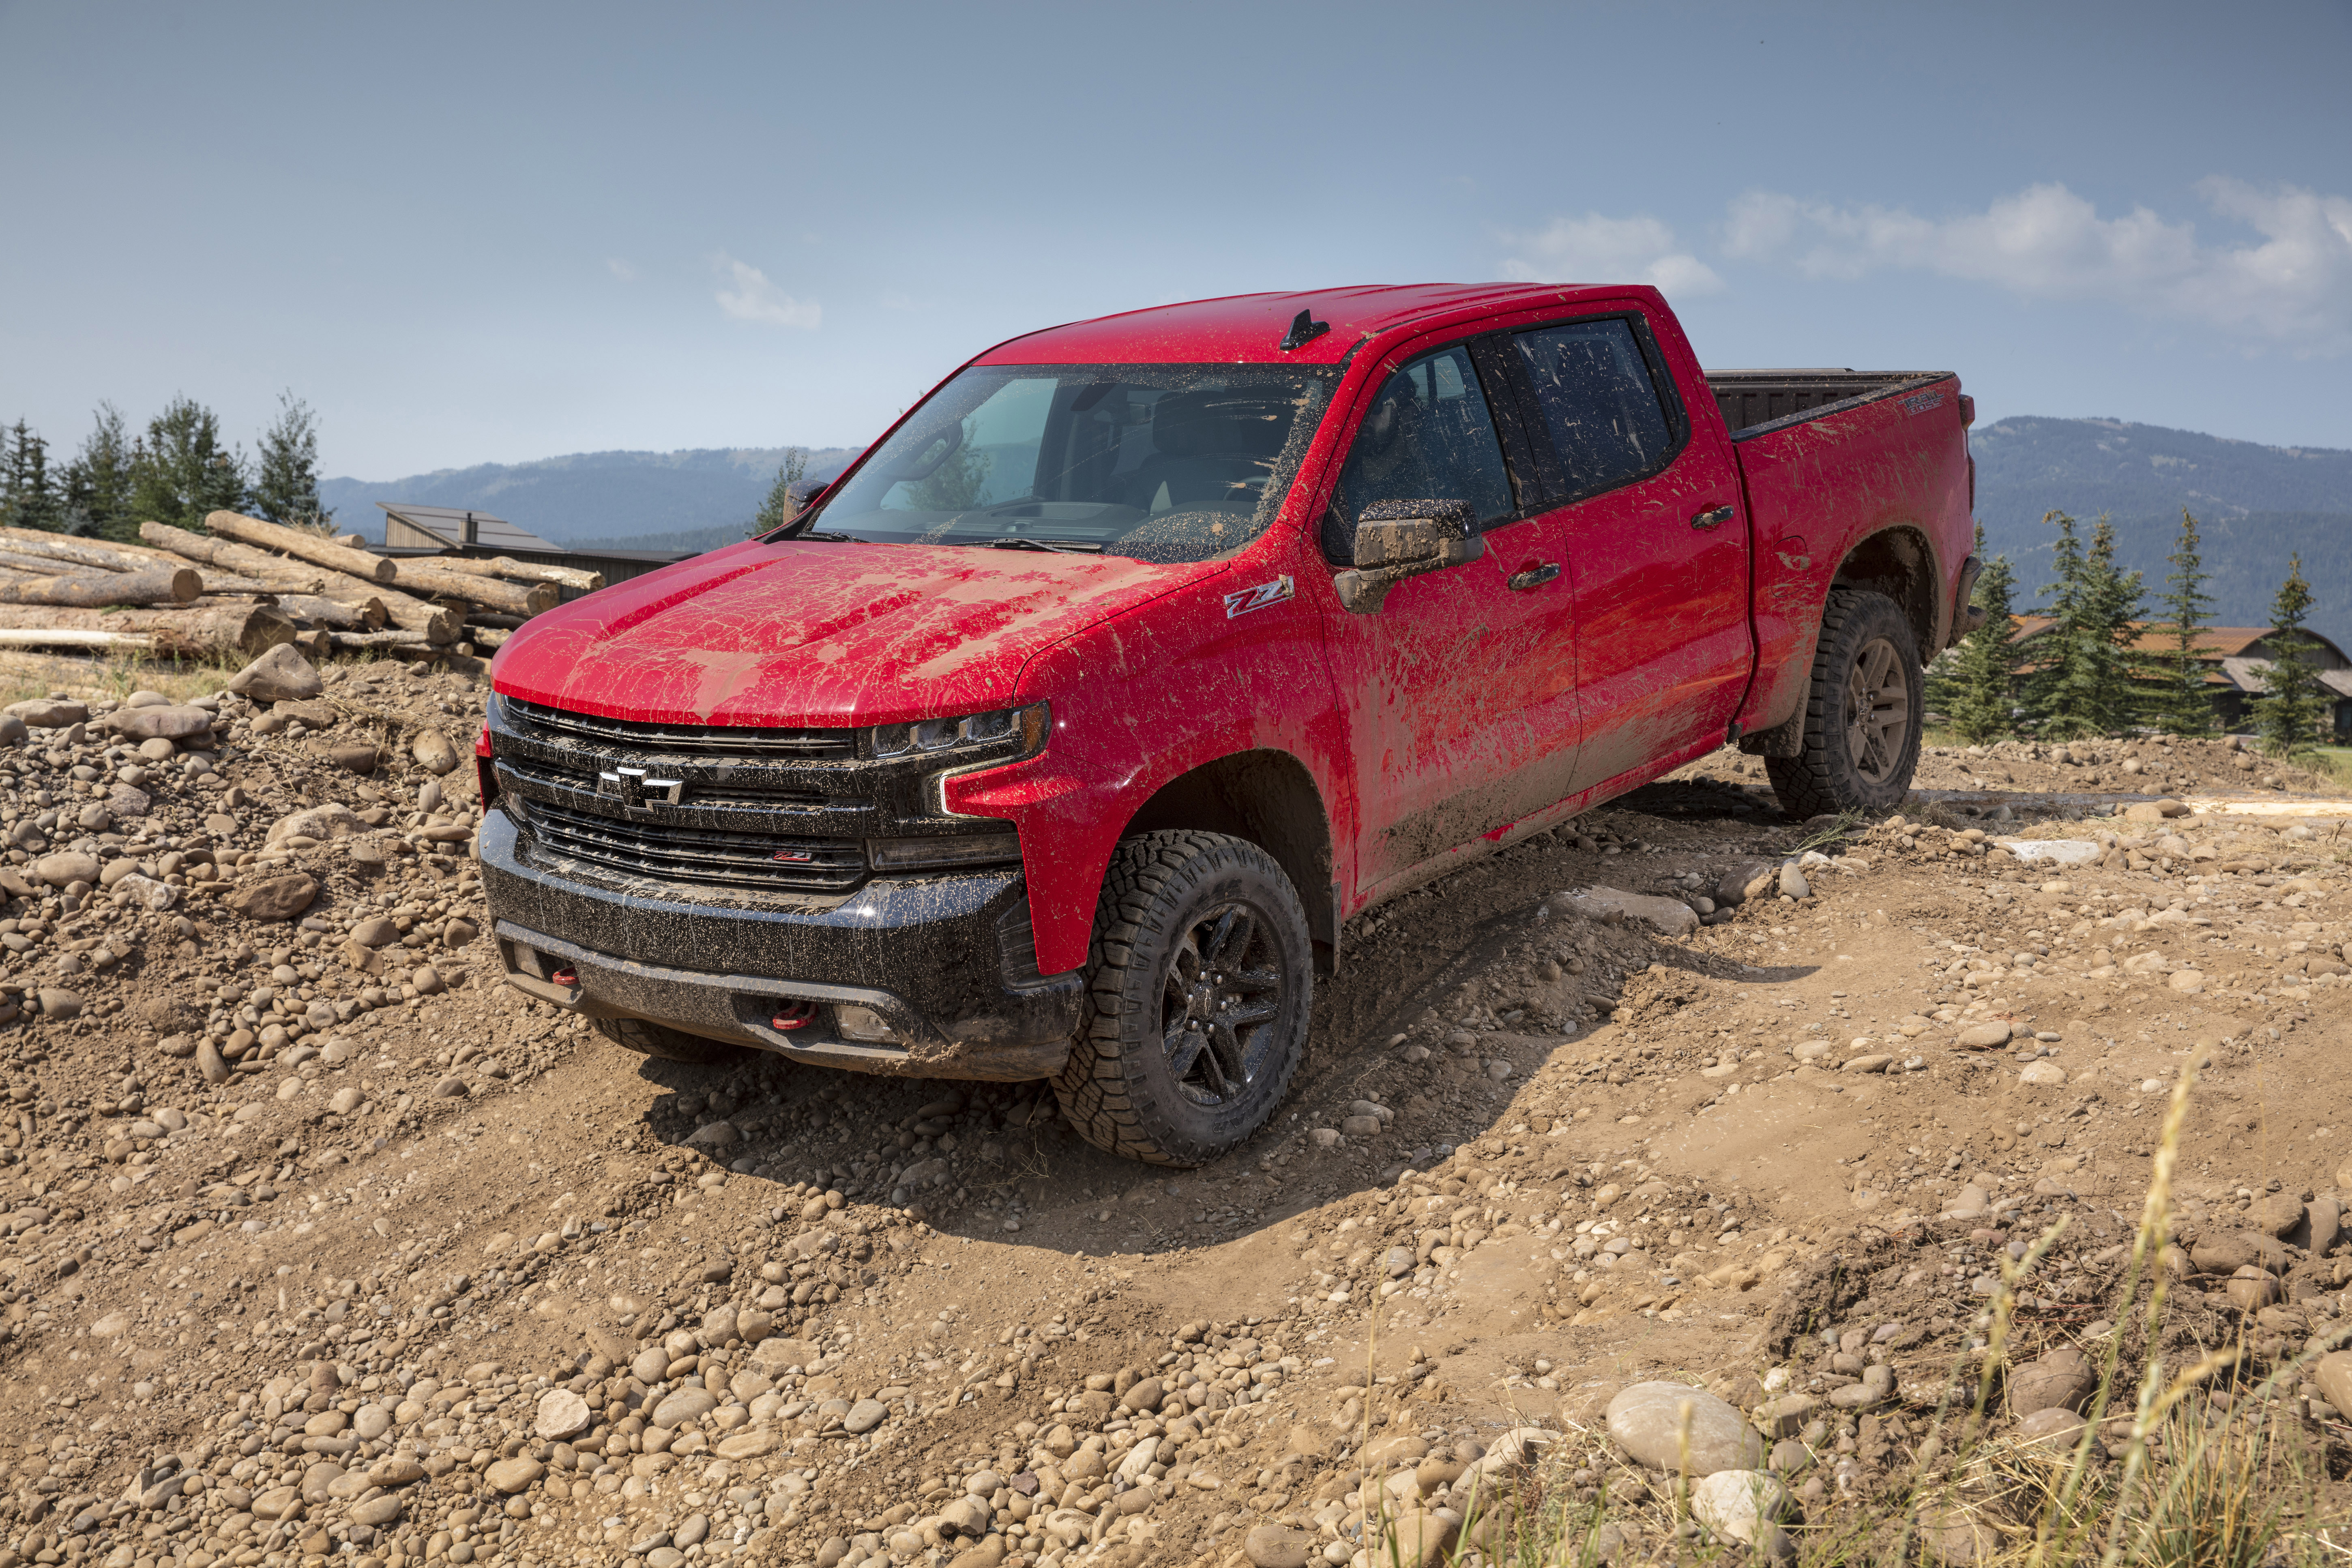 Review: 72 Hours With the 2019 Chevy Silverado Trail Boss